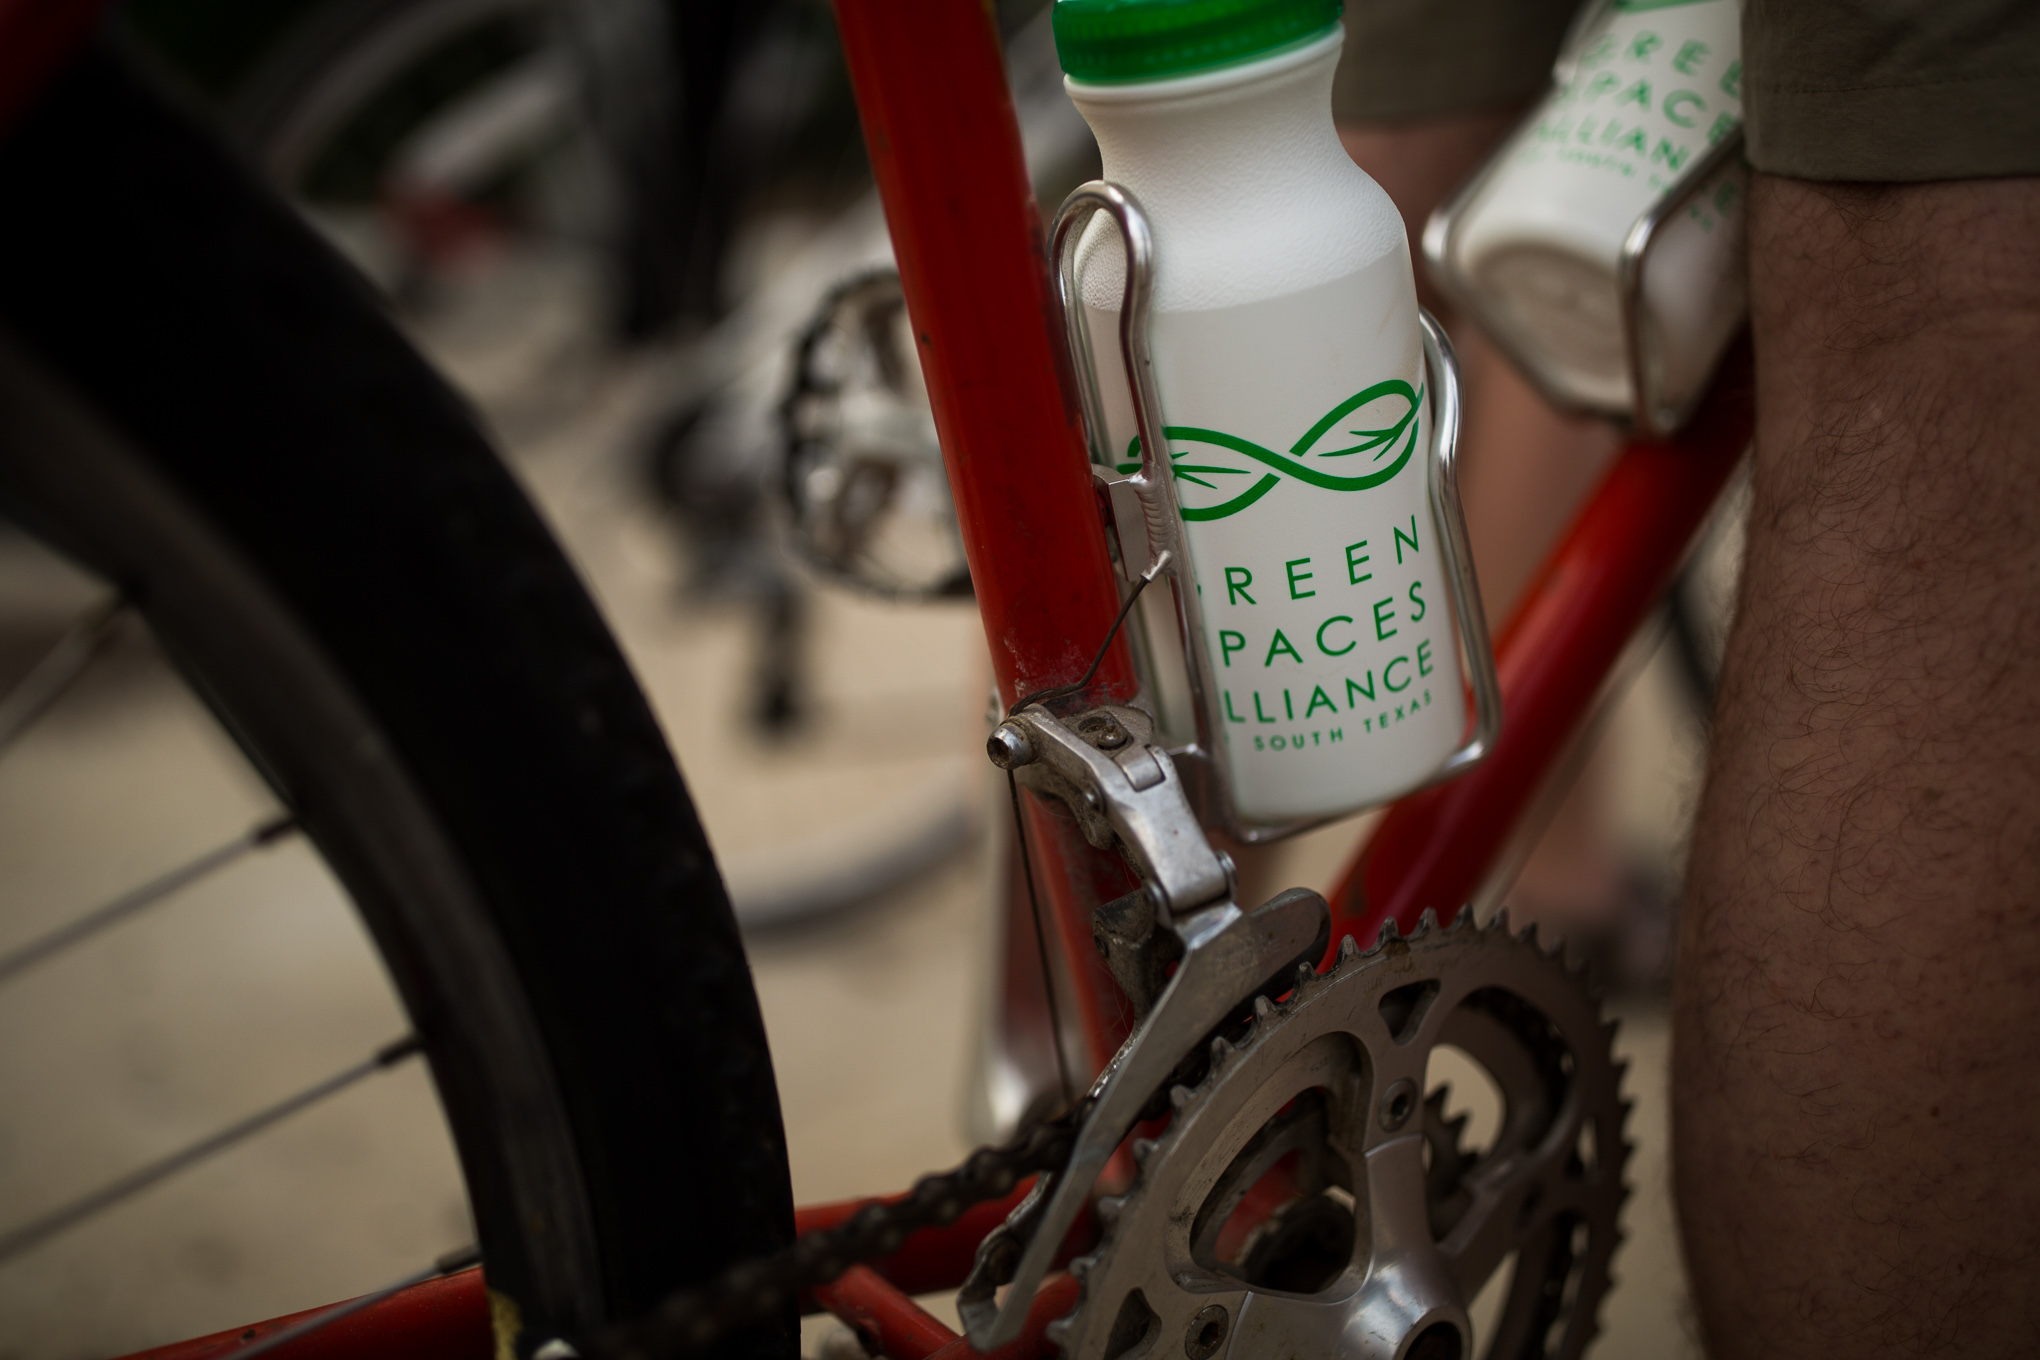 A Green Spaces Alliance water bottle is filled and ready for the ride. Photo by Scott Ball.